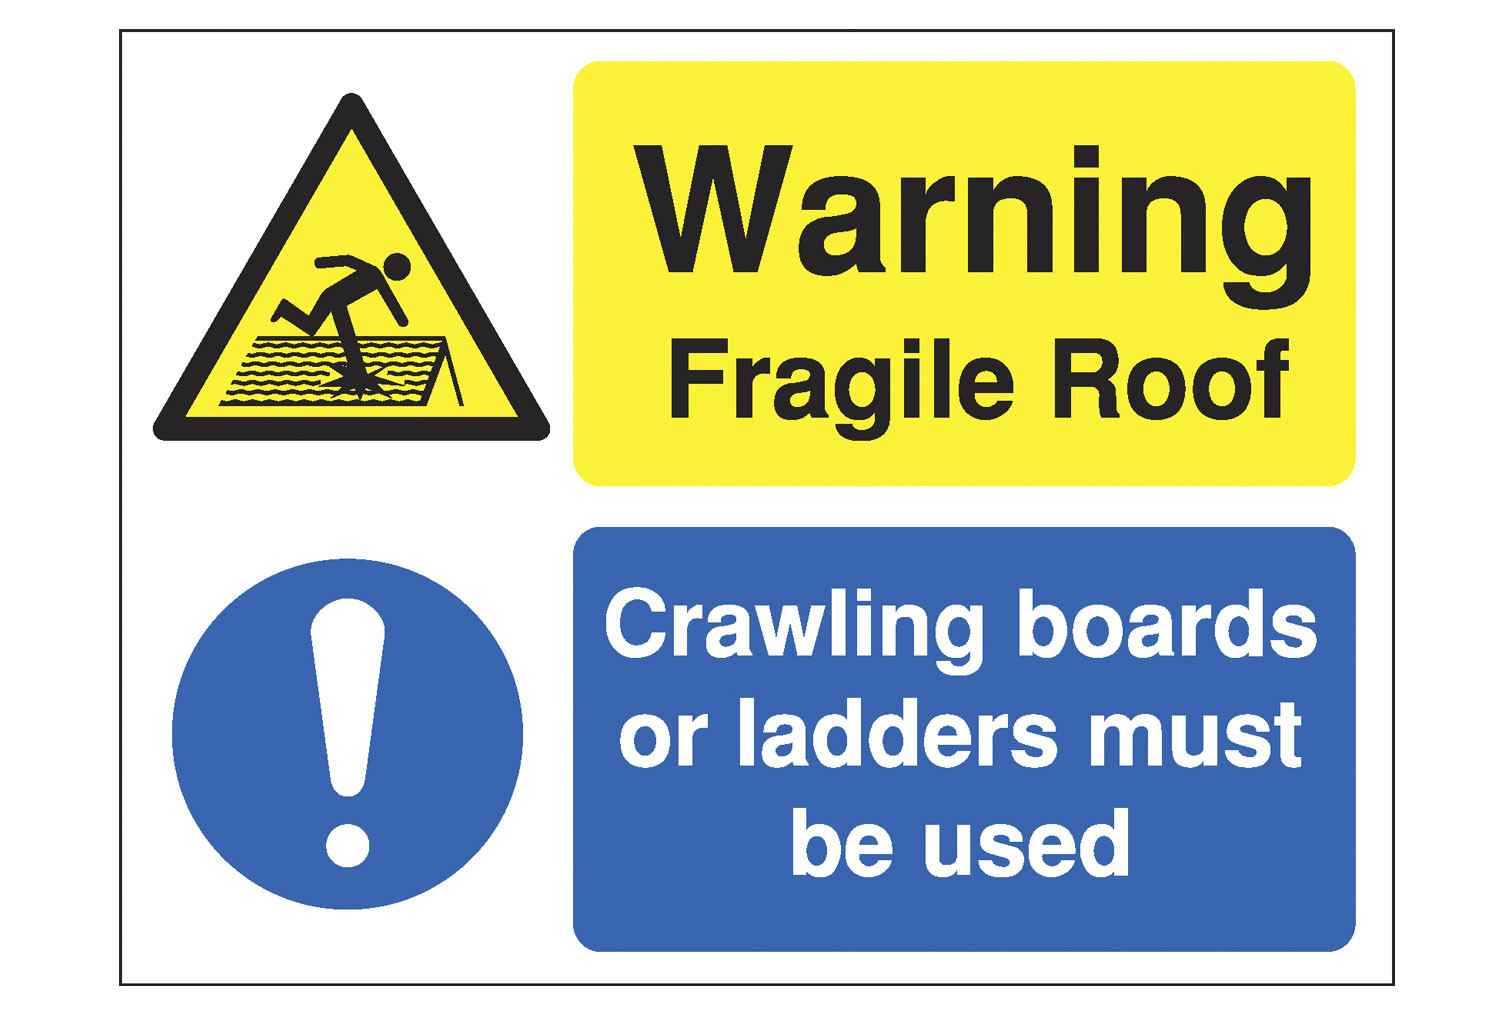 Warning Fragile Roof Site Safety Sign